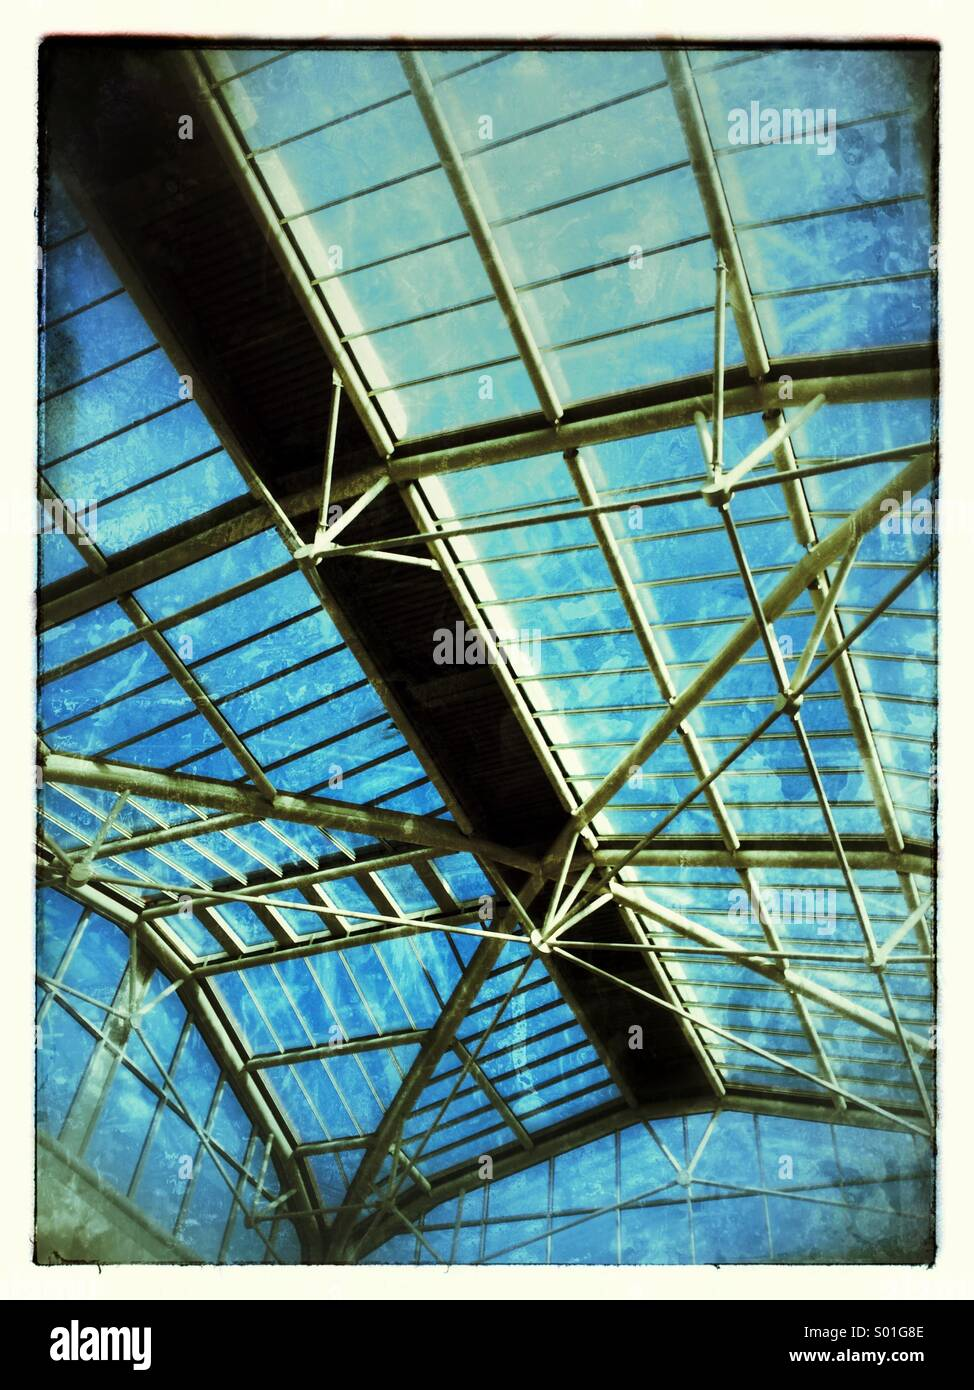 Modern glasshouse structure, - Stock Image